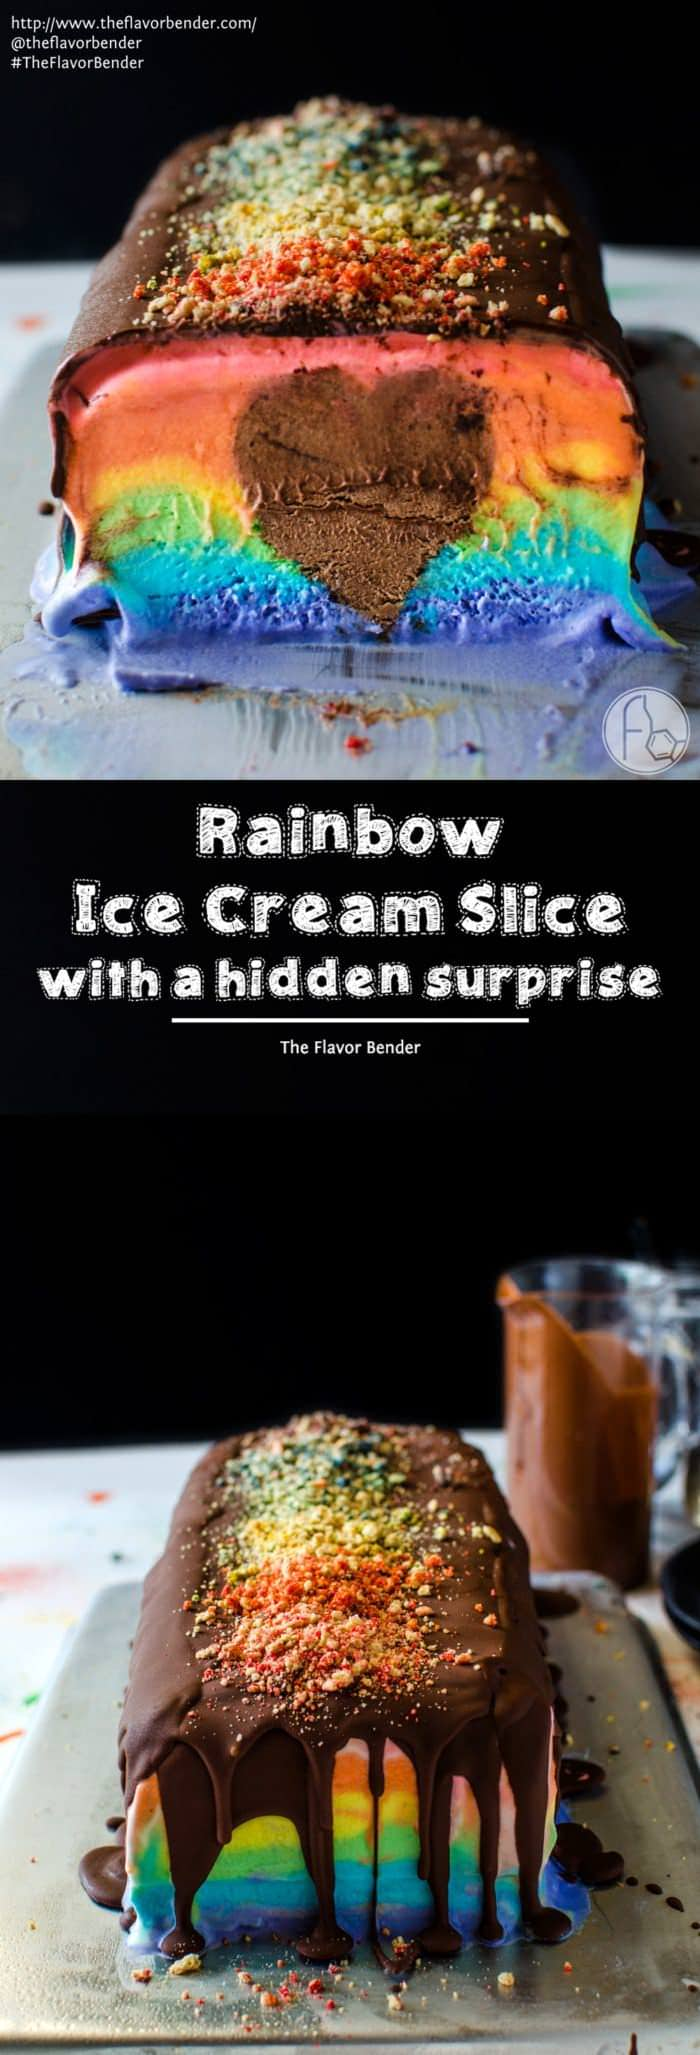 Rainbow Ice Cream Slice with a Hidden Surprise - A deliciously creamy rainbow ice cream slice in bright rainbow colors with a rich, creamy, heart-shaped chocolate mousse center! A fabulous no bake Summer dessert to share with all the people that we love in our lives. SAVE to repin. CLICK to get RECIPE + VIDEO